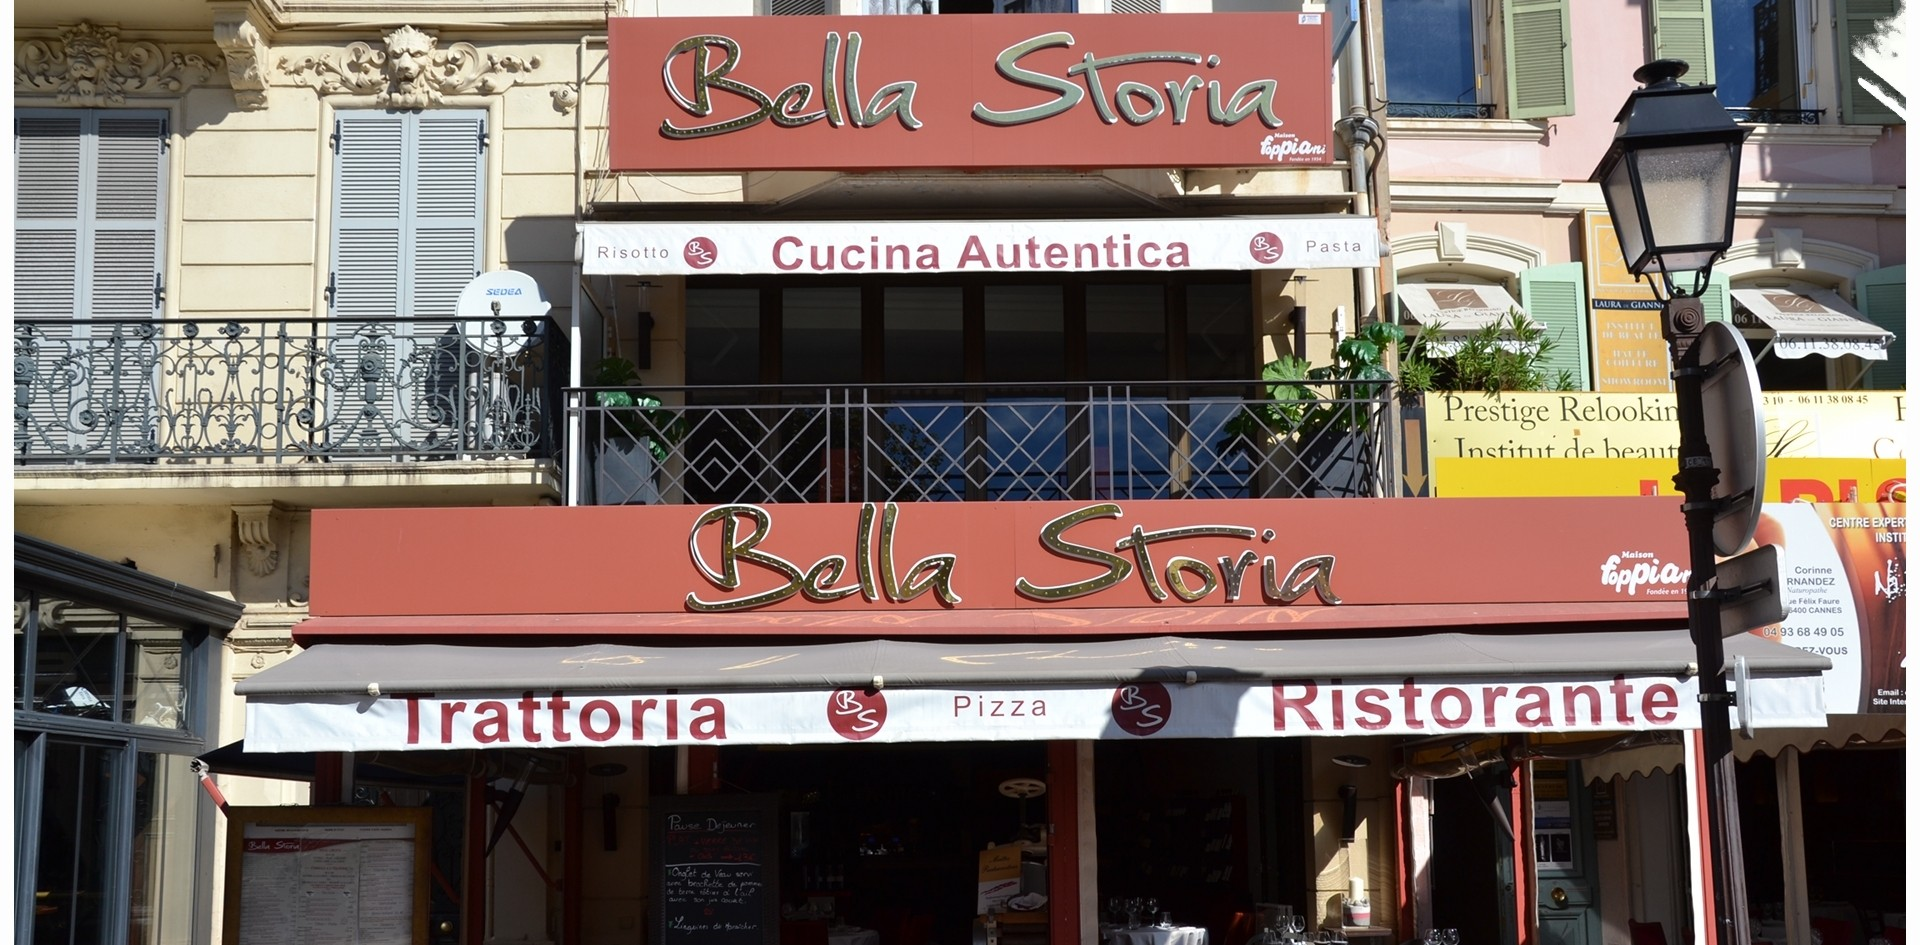 Restaurant in Cannes: Bella Storia